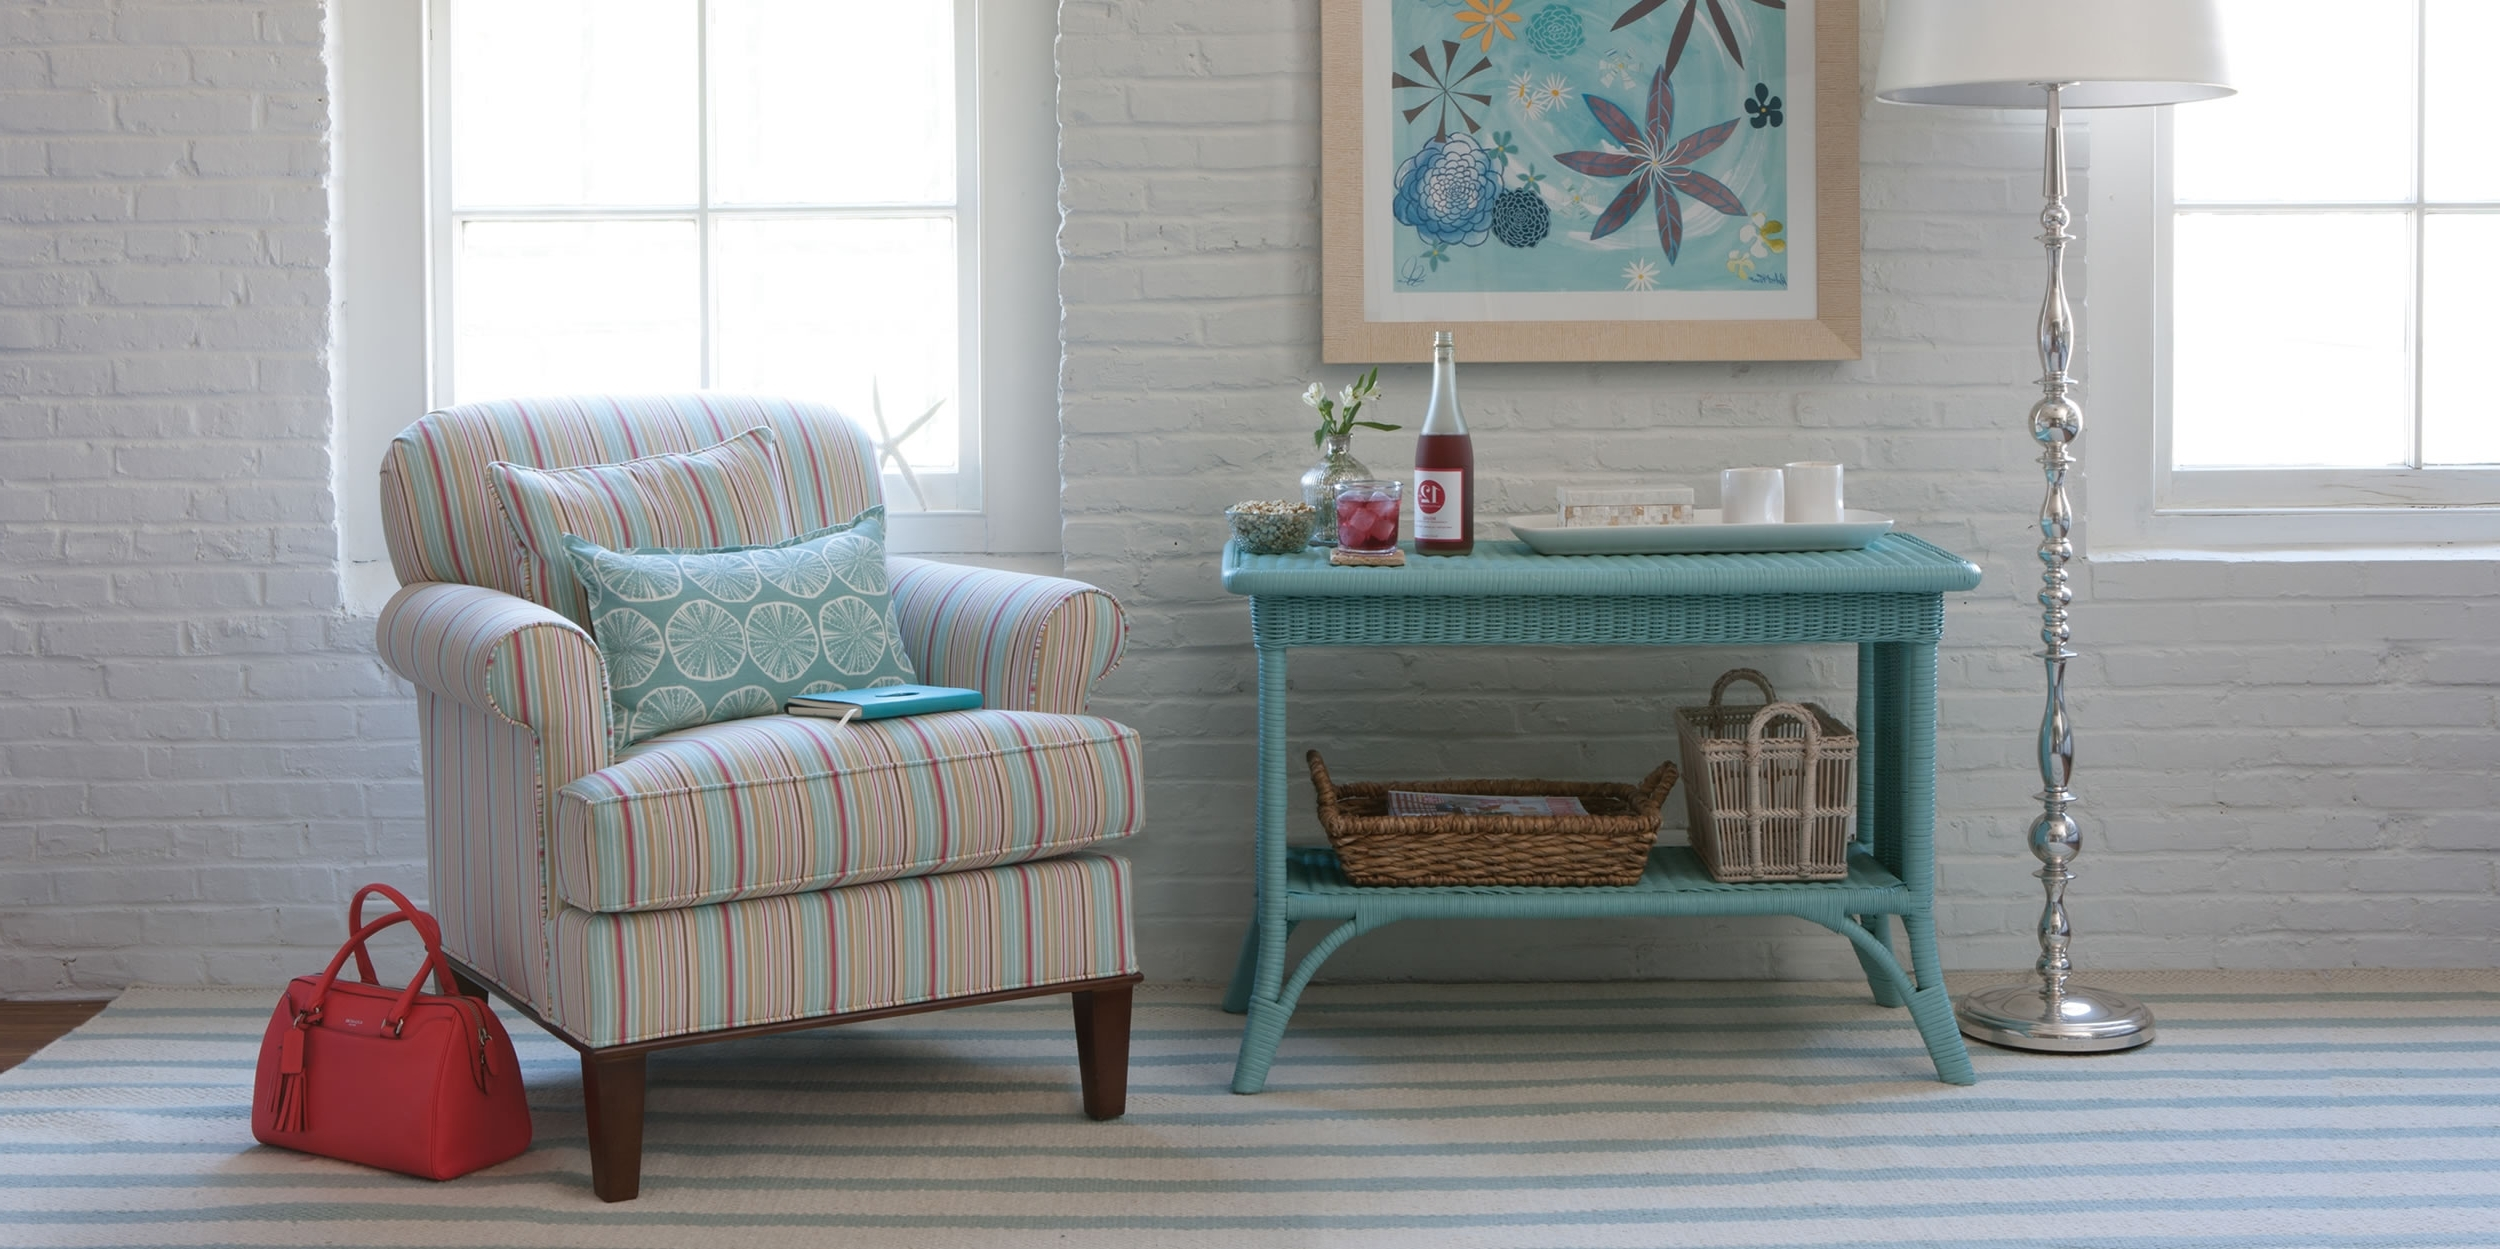 Well Known Live Like A Royal Familyusing Cottage Style Furniture Intended For Cottage Style Sofas And Chairs (View 13 of 15)